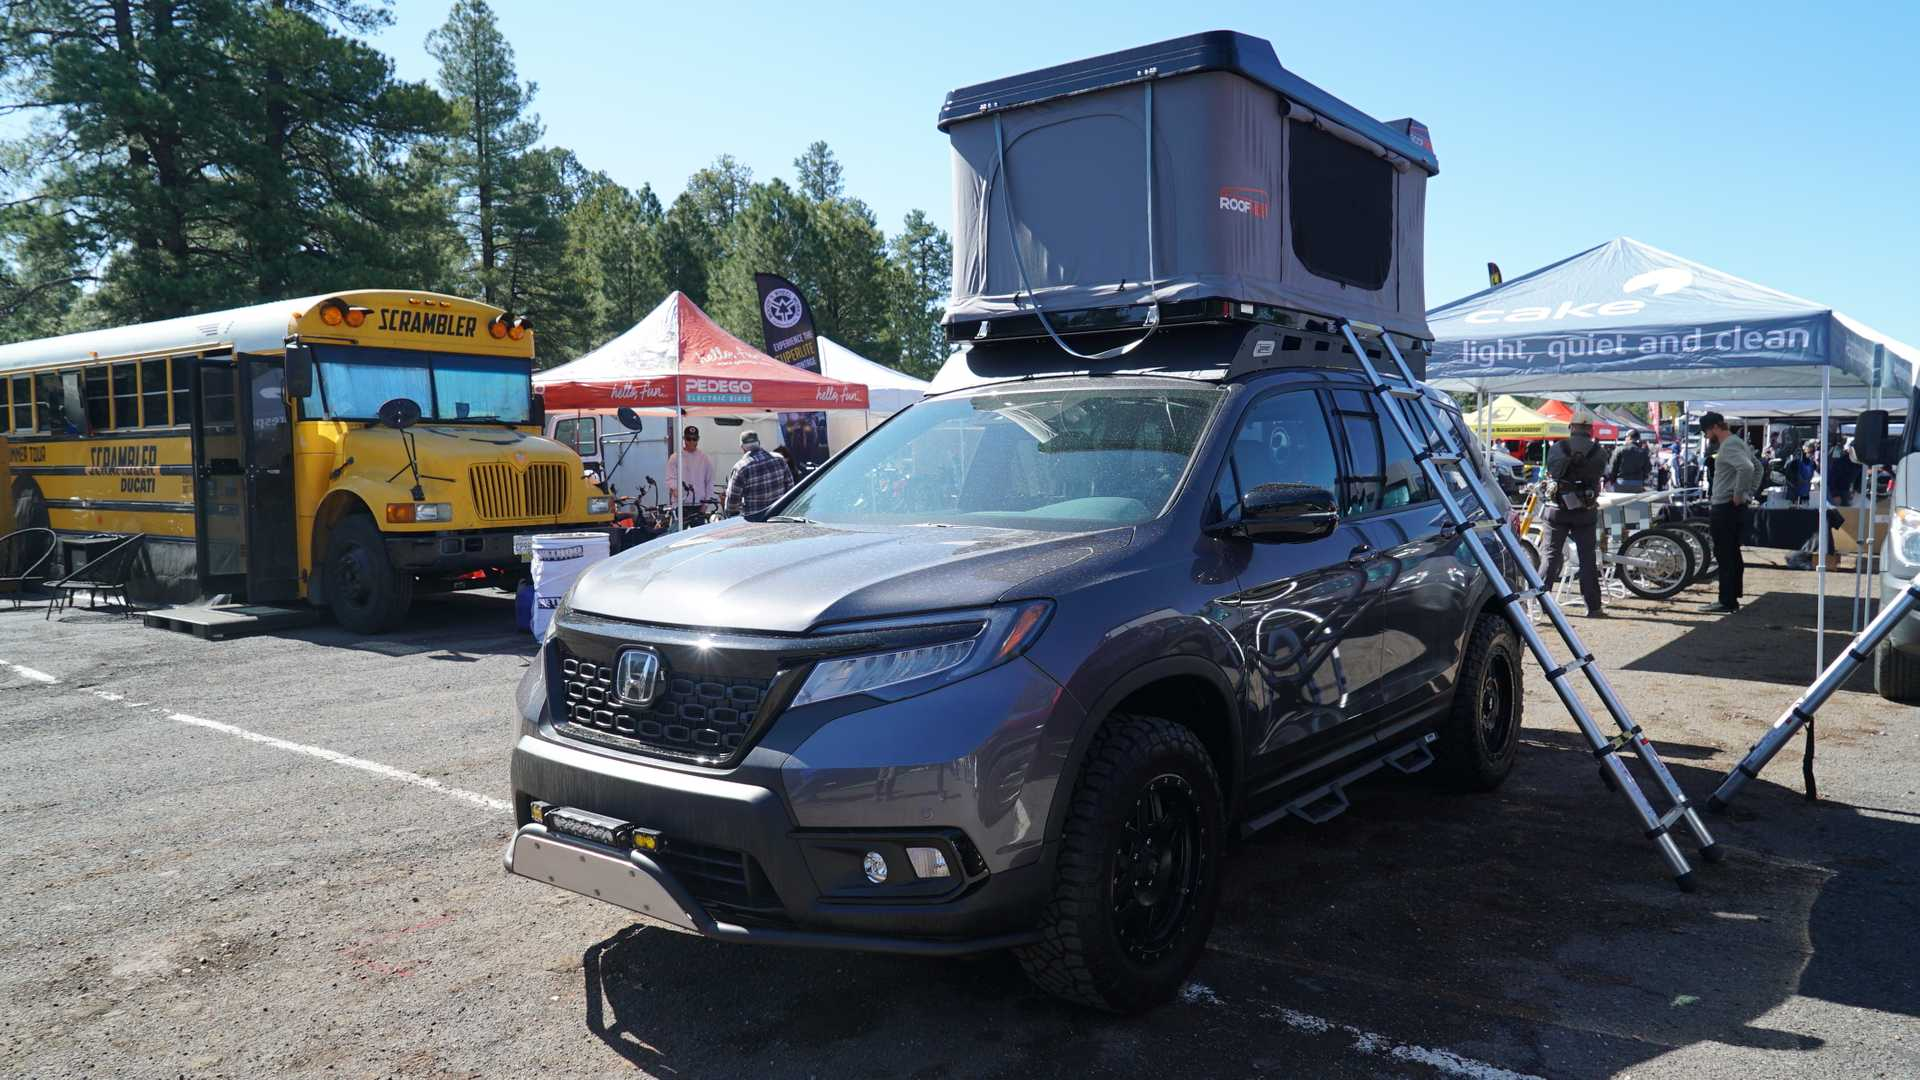 Special versions of the Honda Passport (SUV) and Ridgeline (pickup truck) have made an appearance at the ongoing 2019 Overland Expo in Arizona